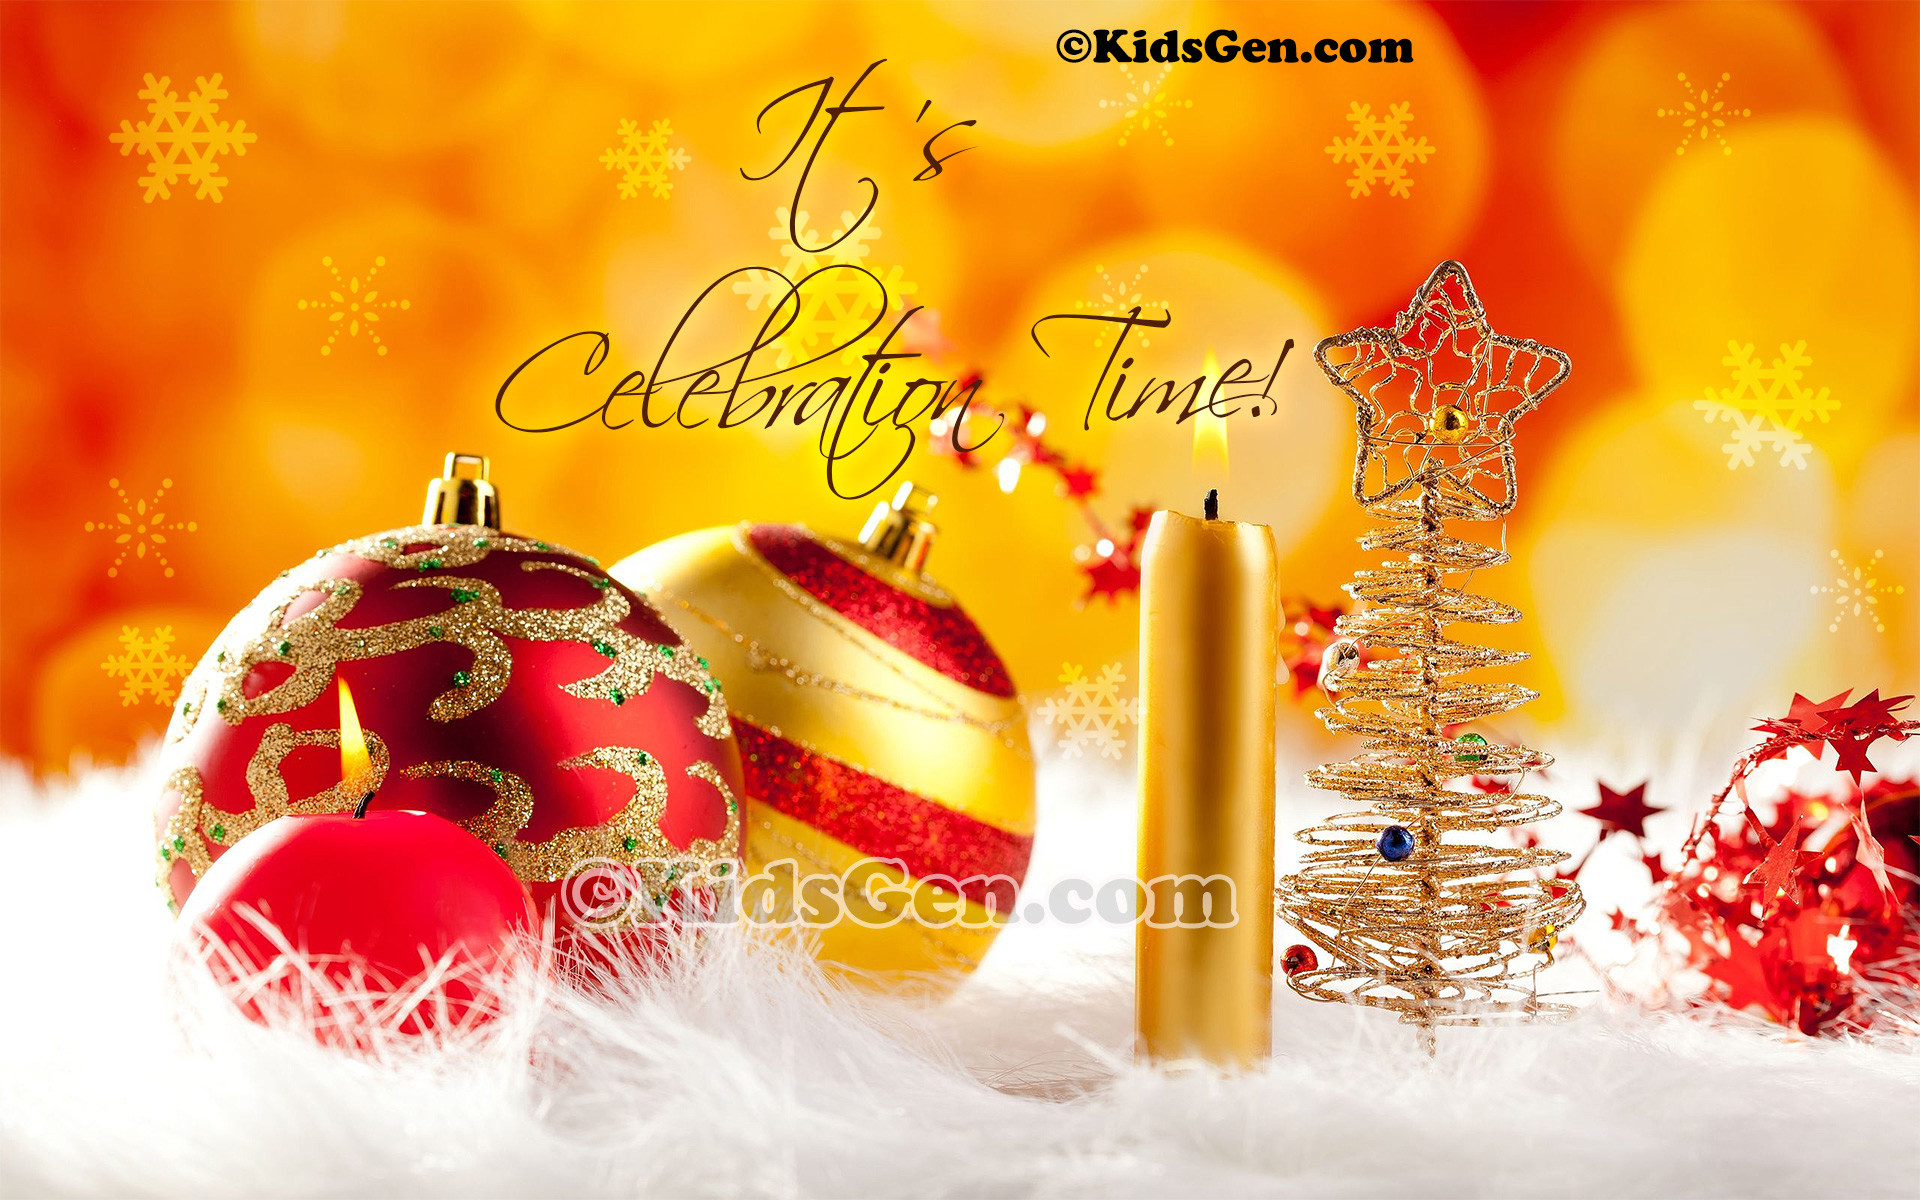 1920x1200 A wonderful high quality Christmas wallpaper showcasing the spirit of  celebration.